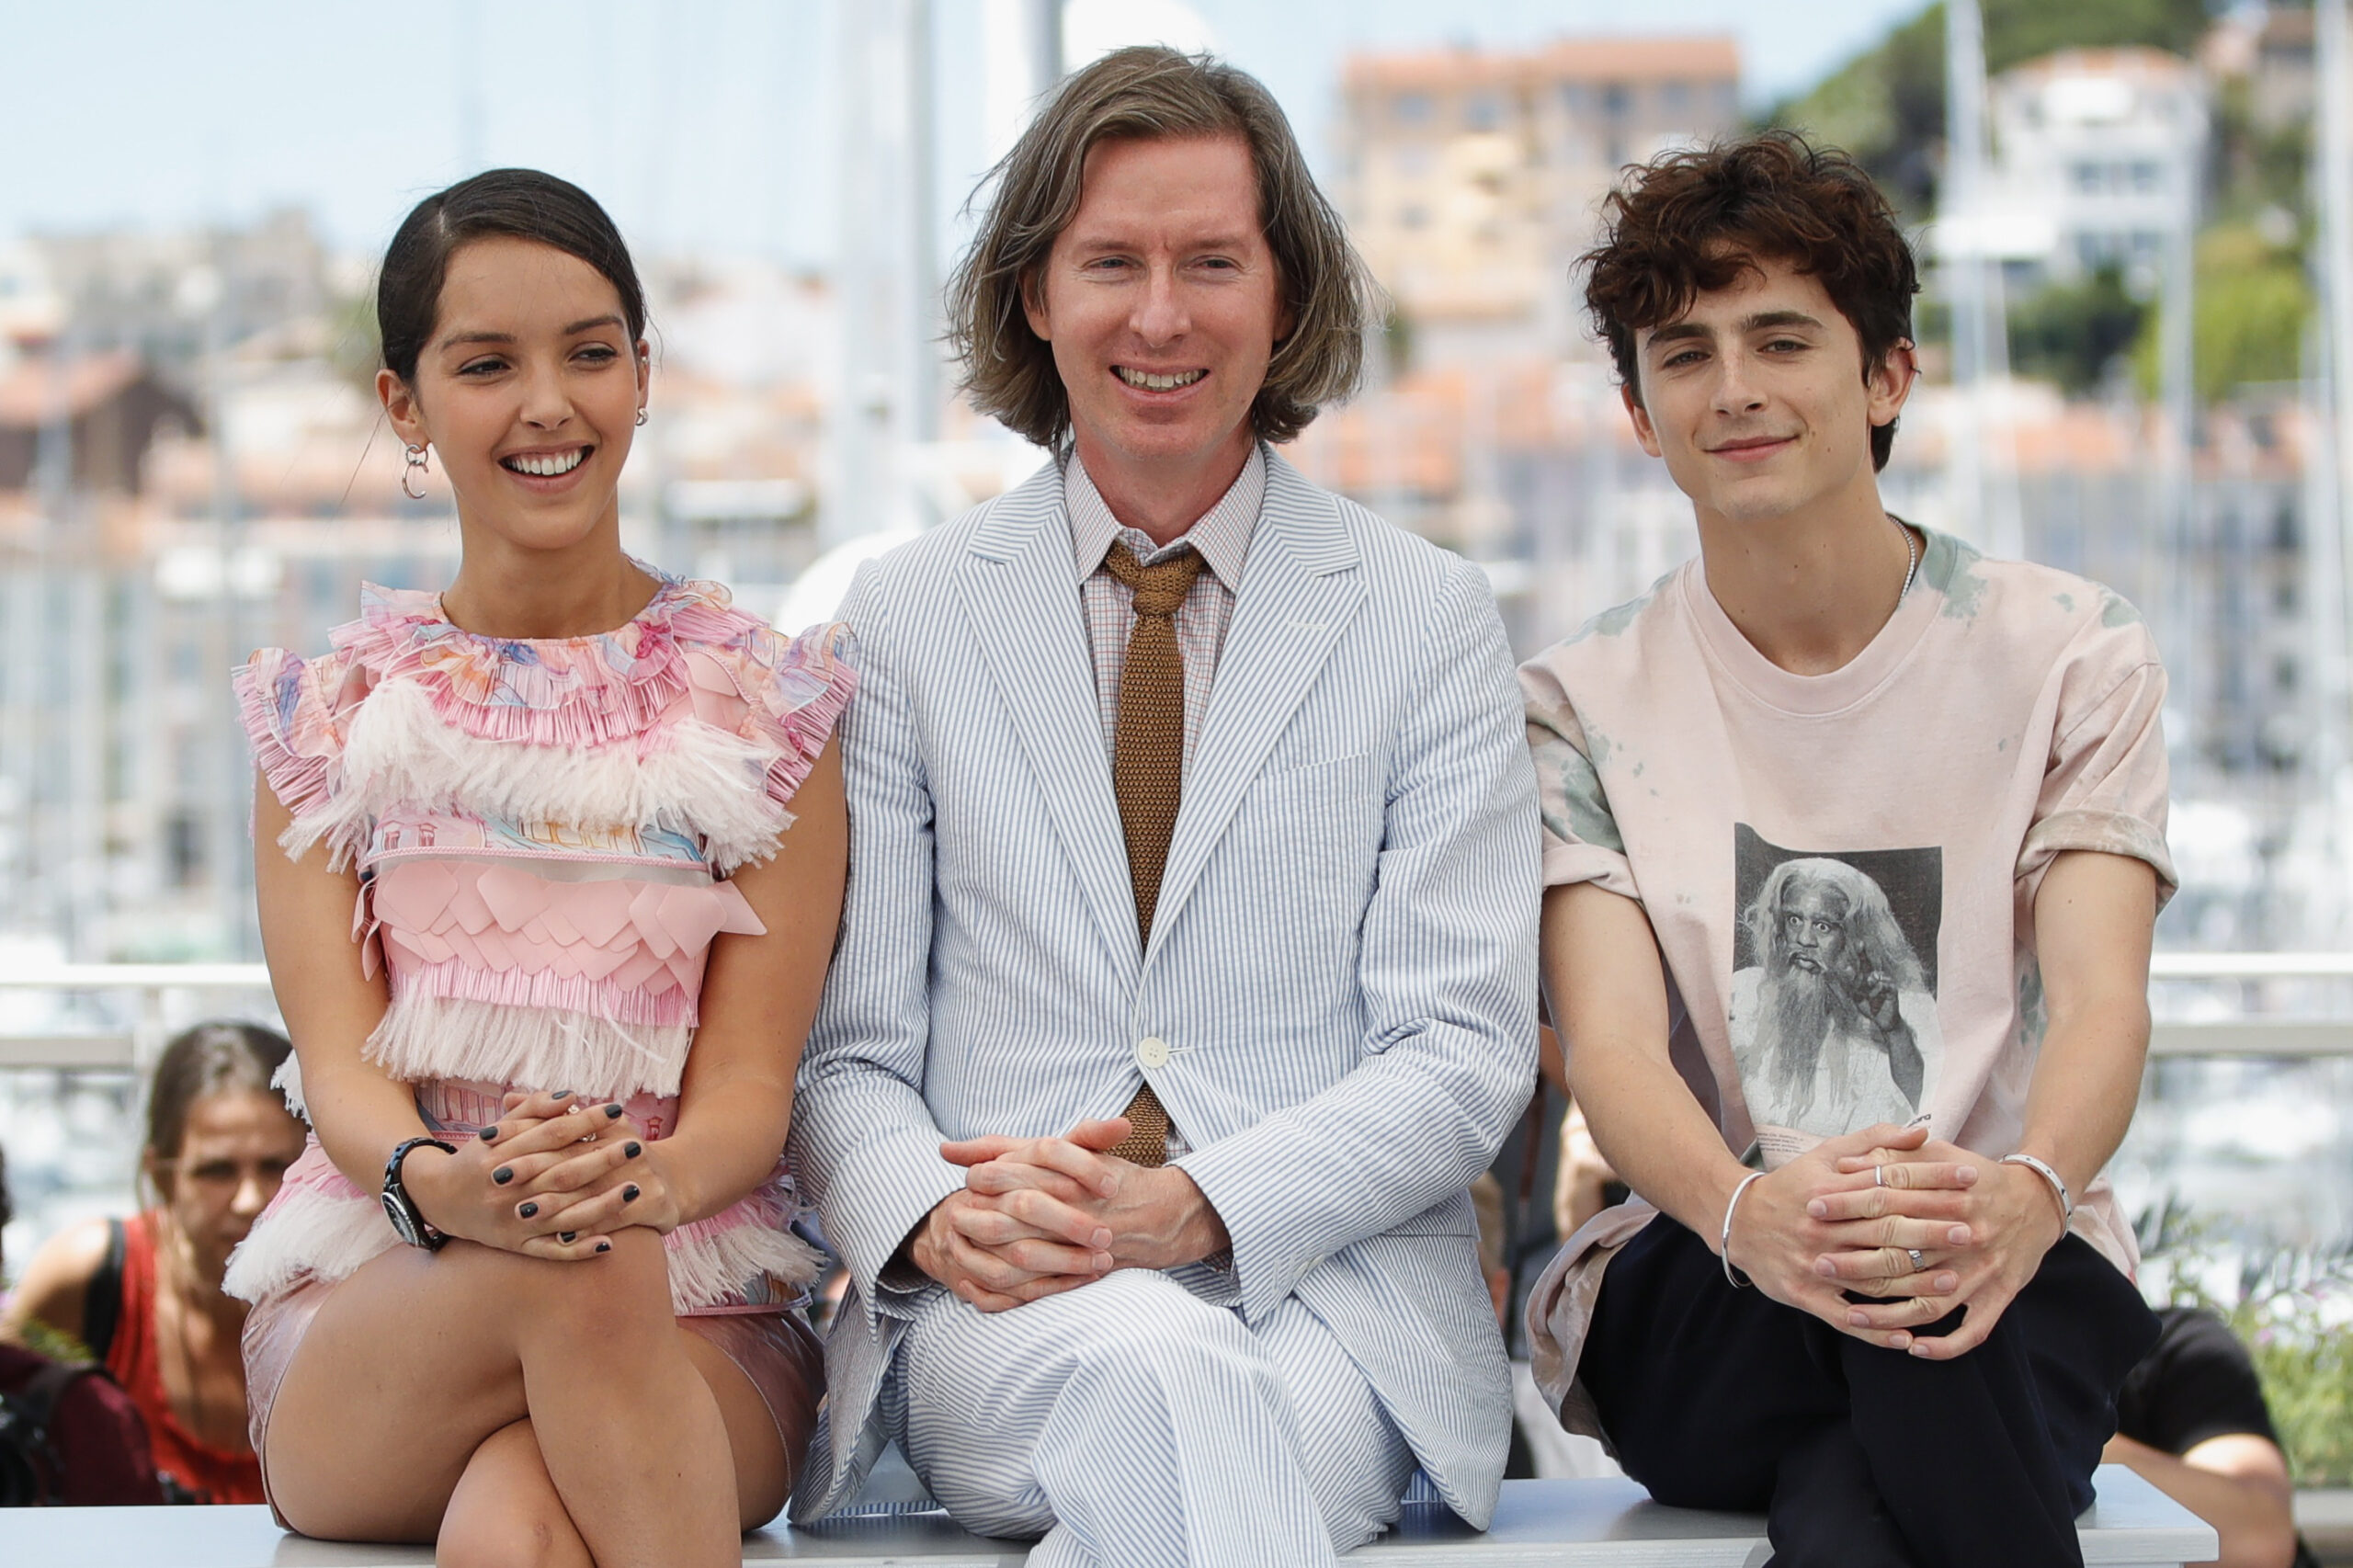 Die besten Outfits vom Cannes Film Festival 2021: Wes Anderson